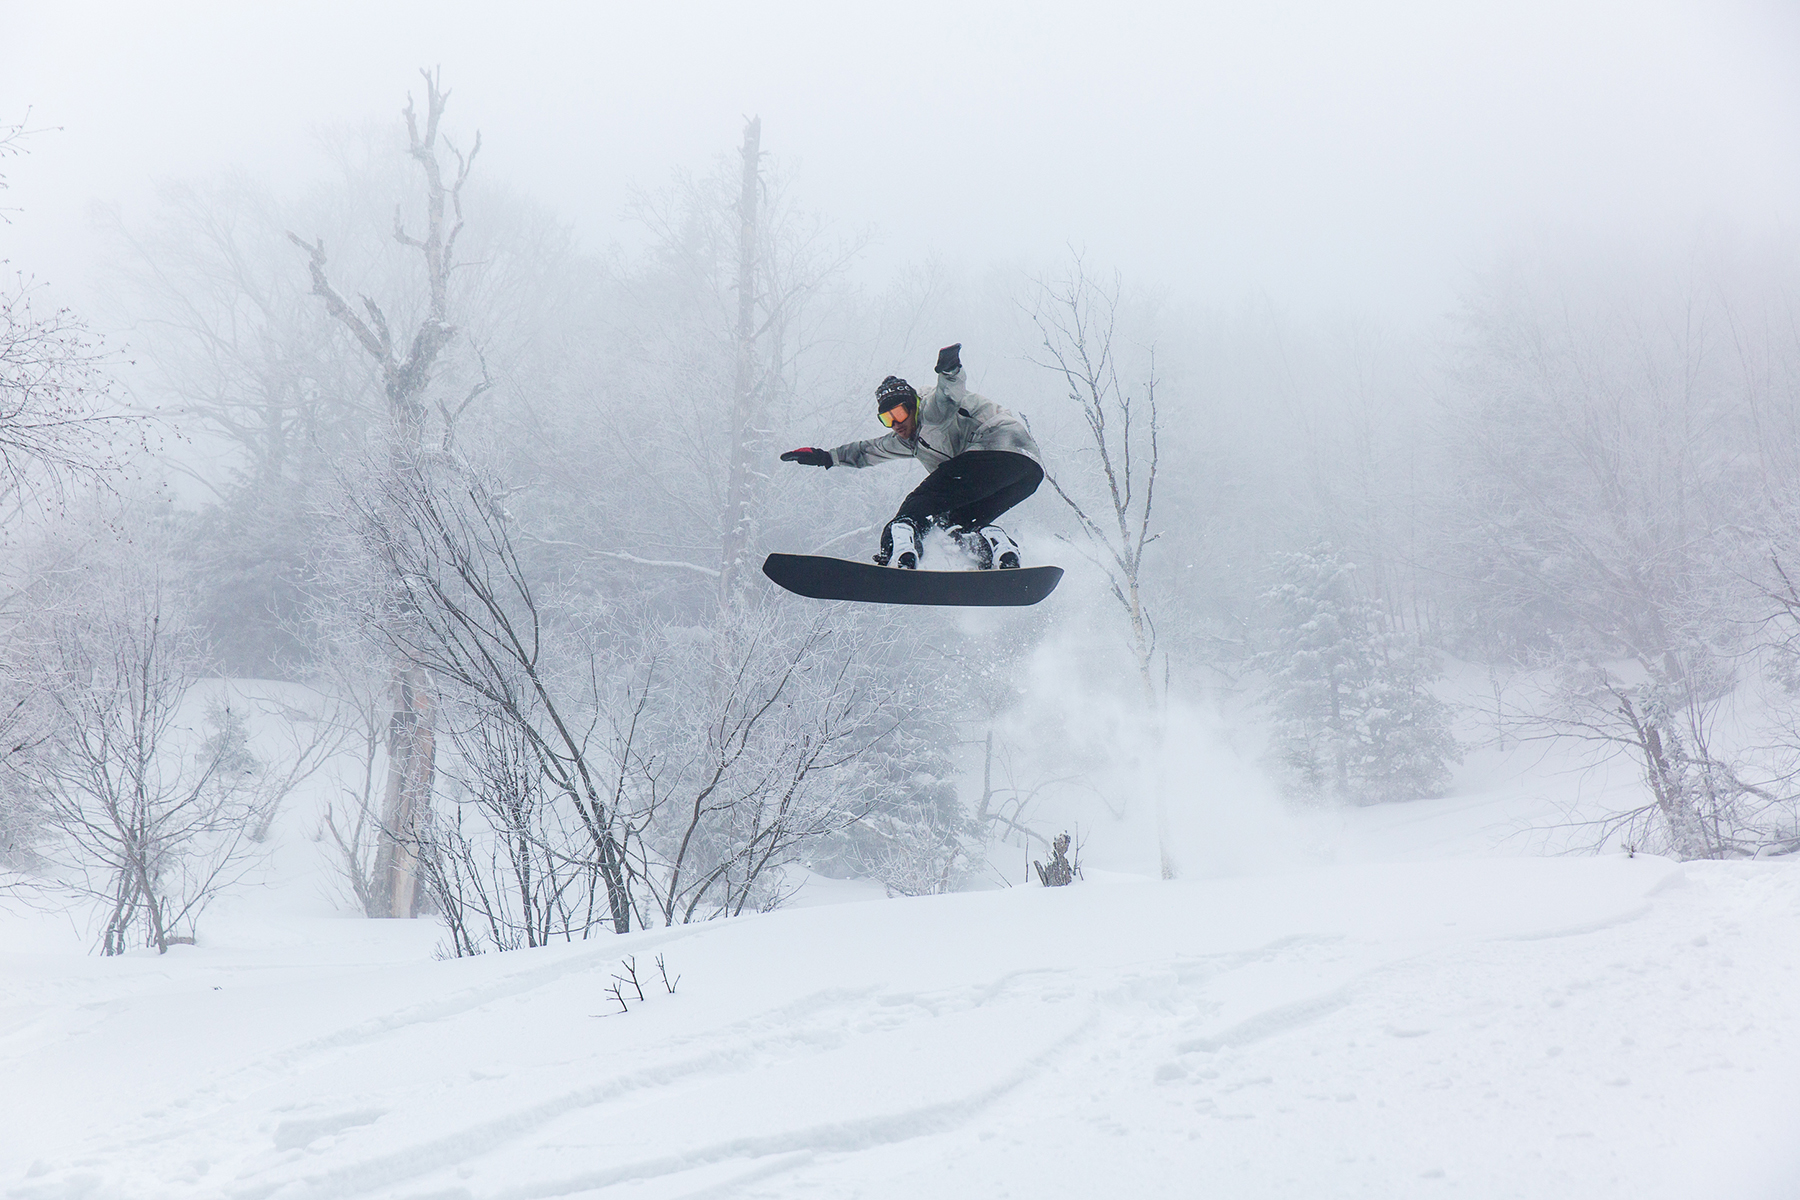 Ralph Kucharek, VT backcountry . ph: Shem Roose